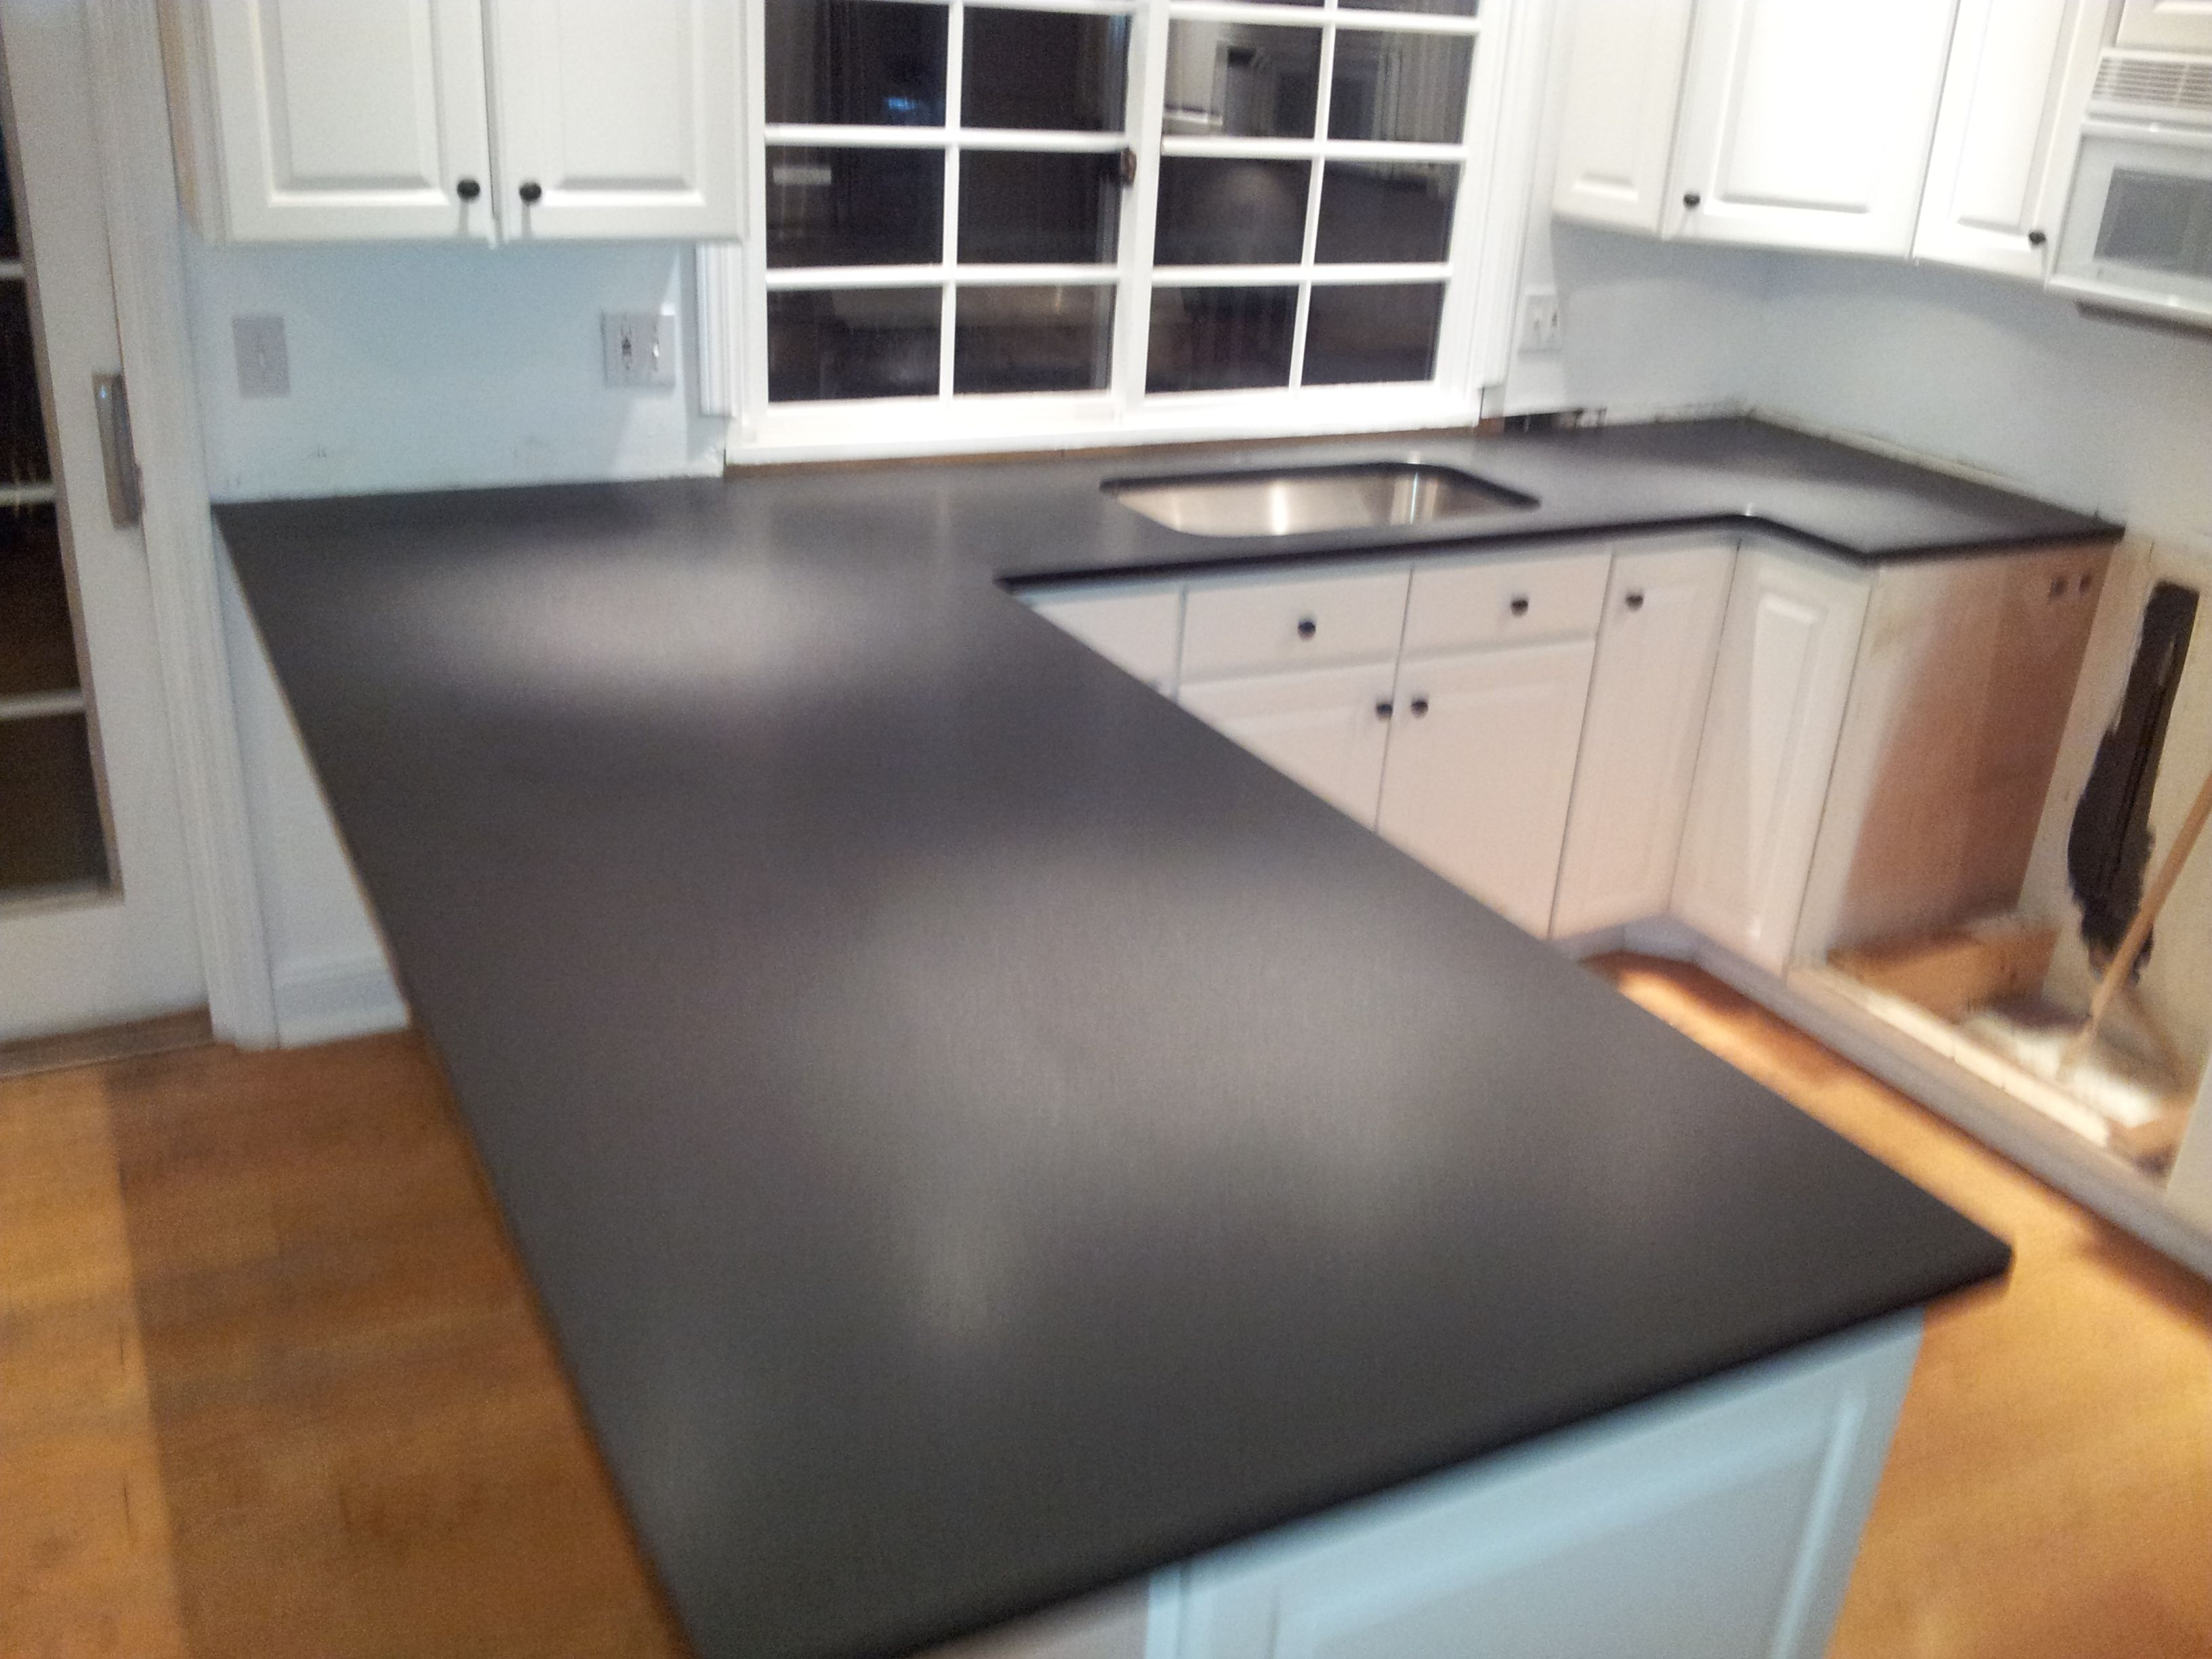 Sq Quote Classy We Offer Granite Countertops Installation And Fabrication In The